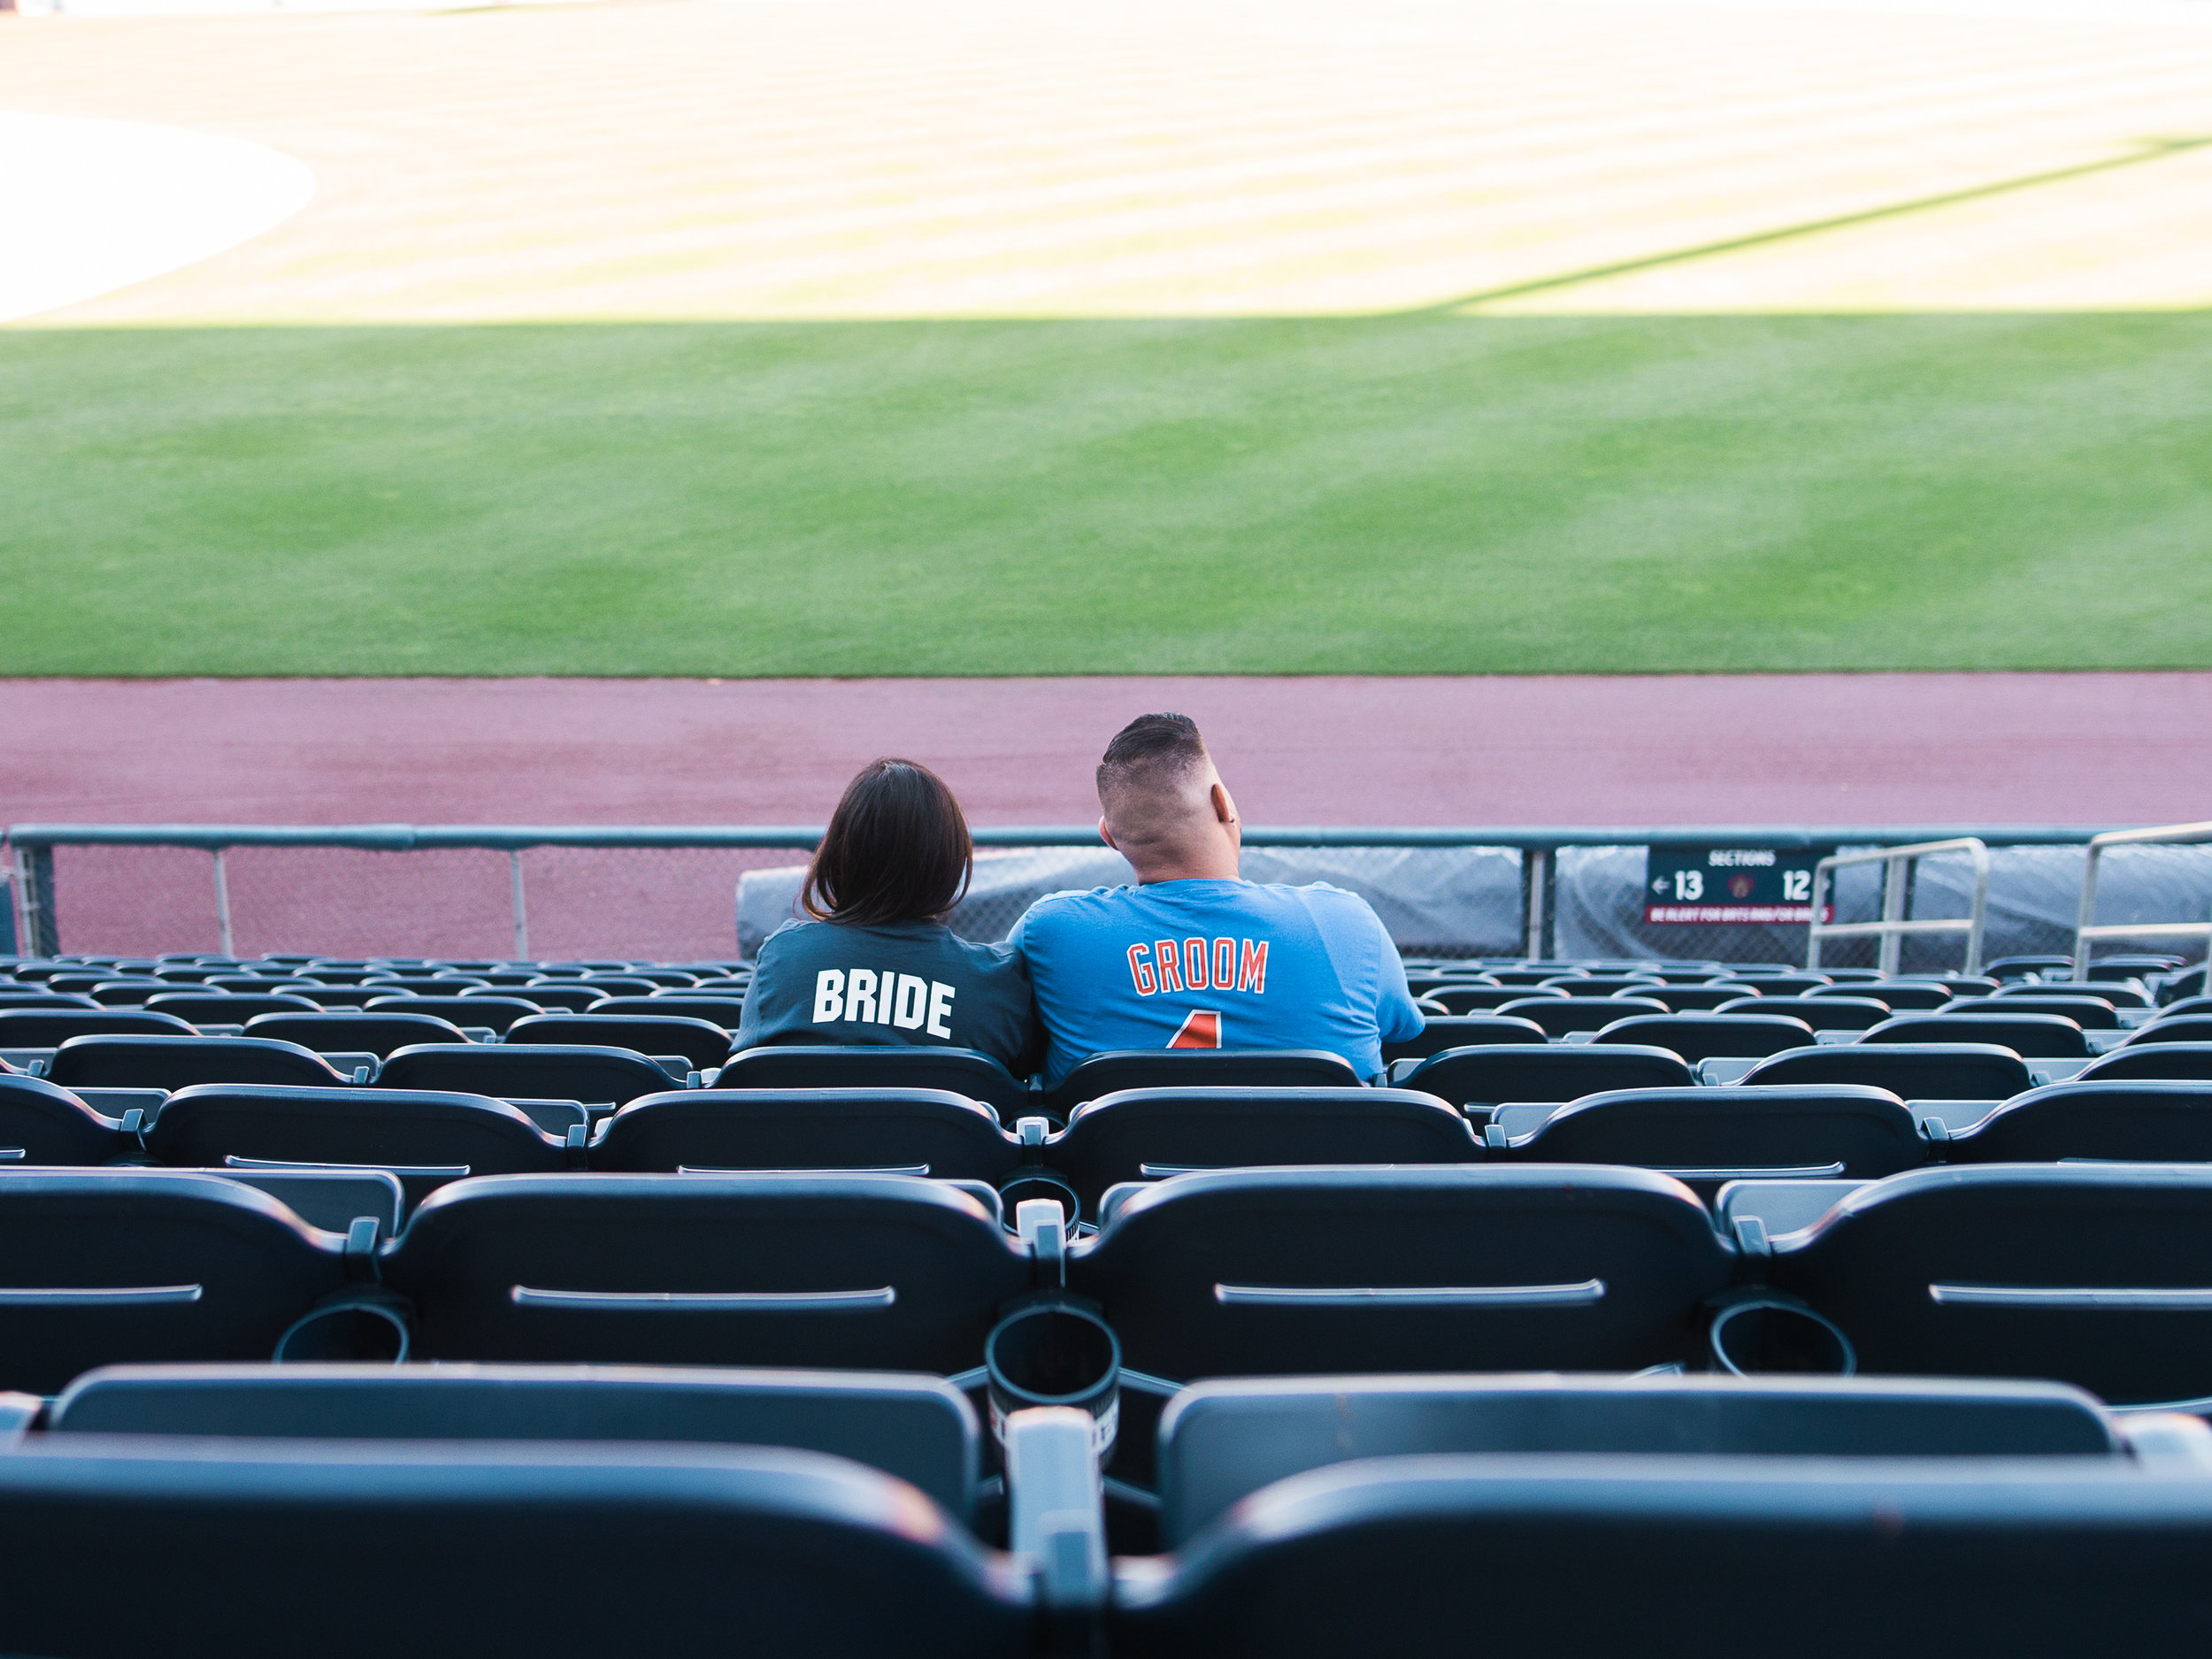 bride and groom baseball stadium